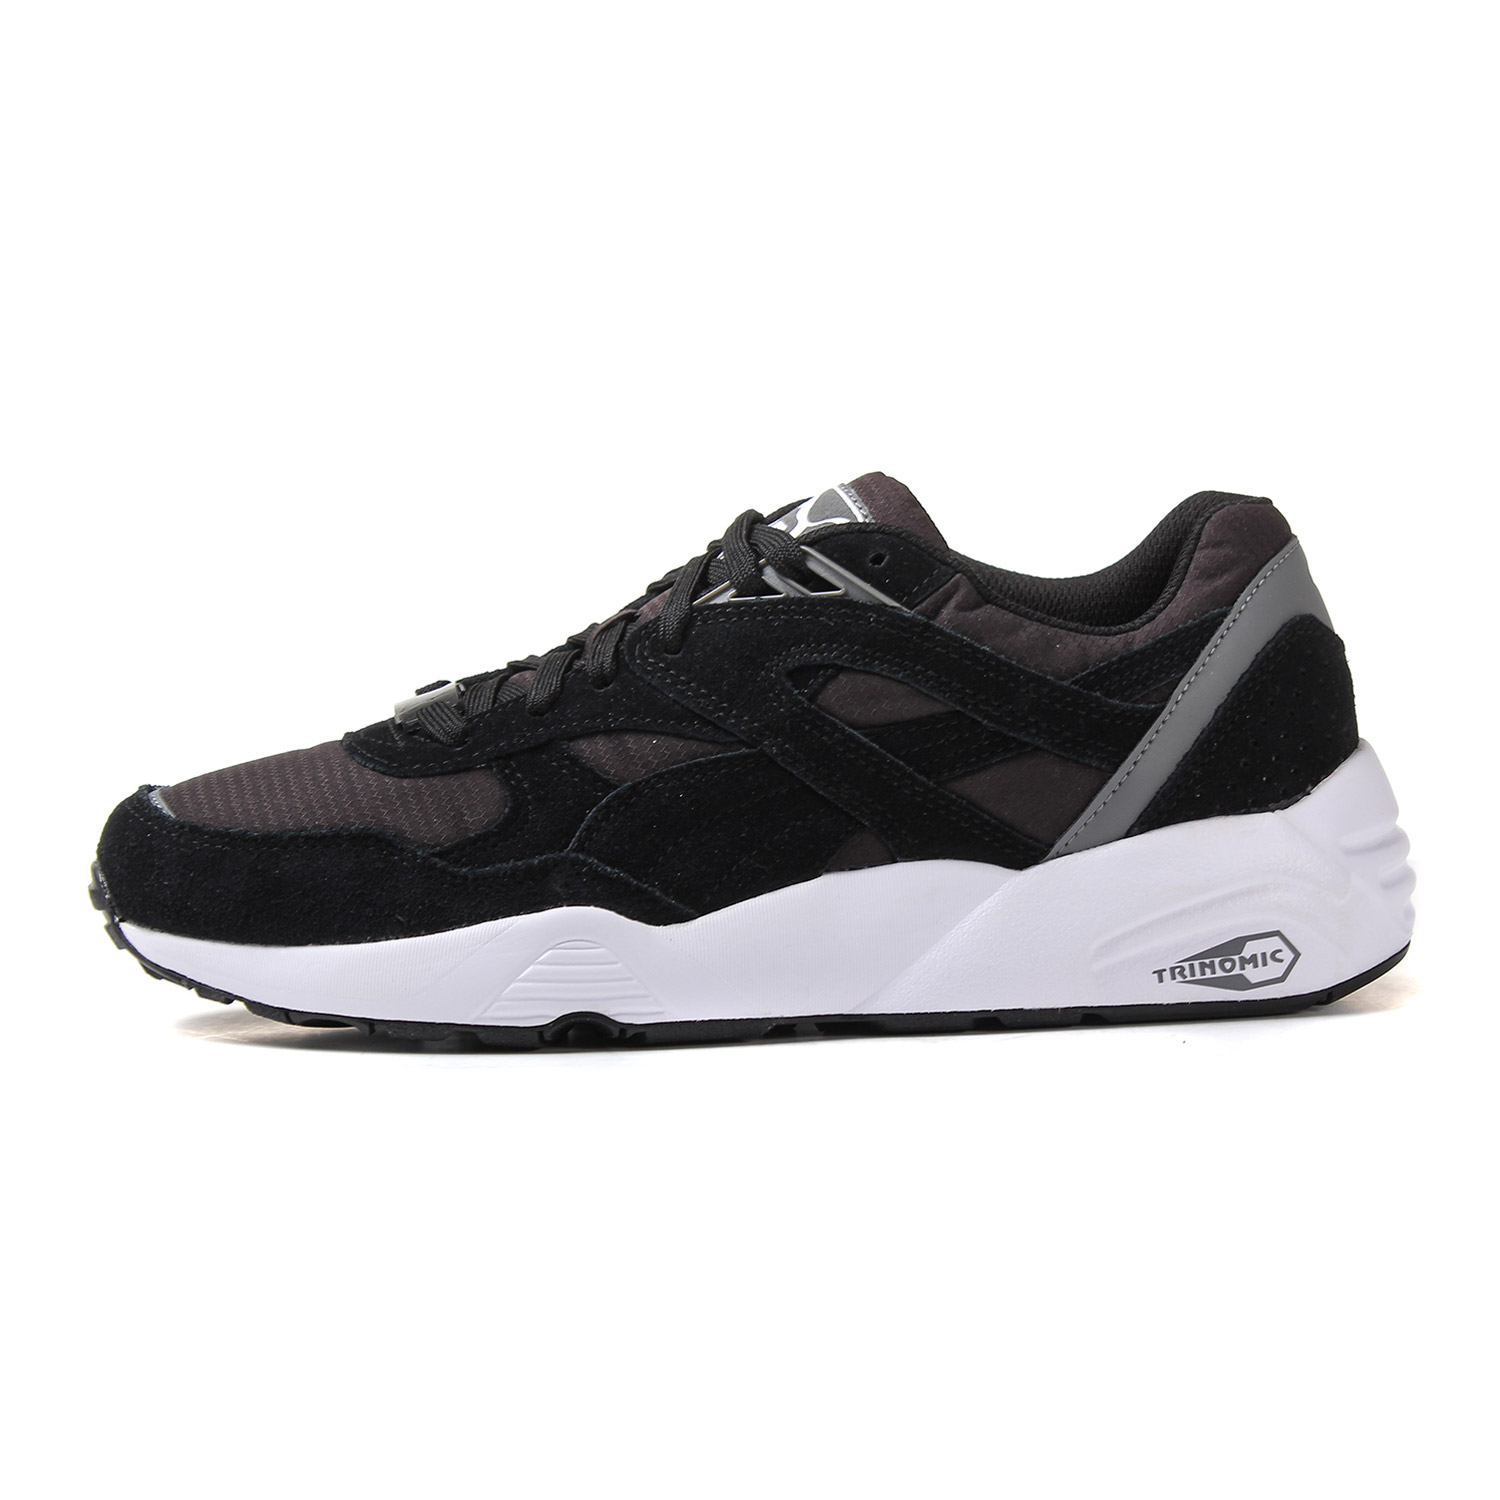 Puma Puma men s shoes casual shoes 2017 spring new sports shoes R698 retro  suede 36257001 1a9546aad